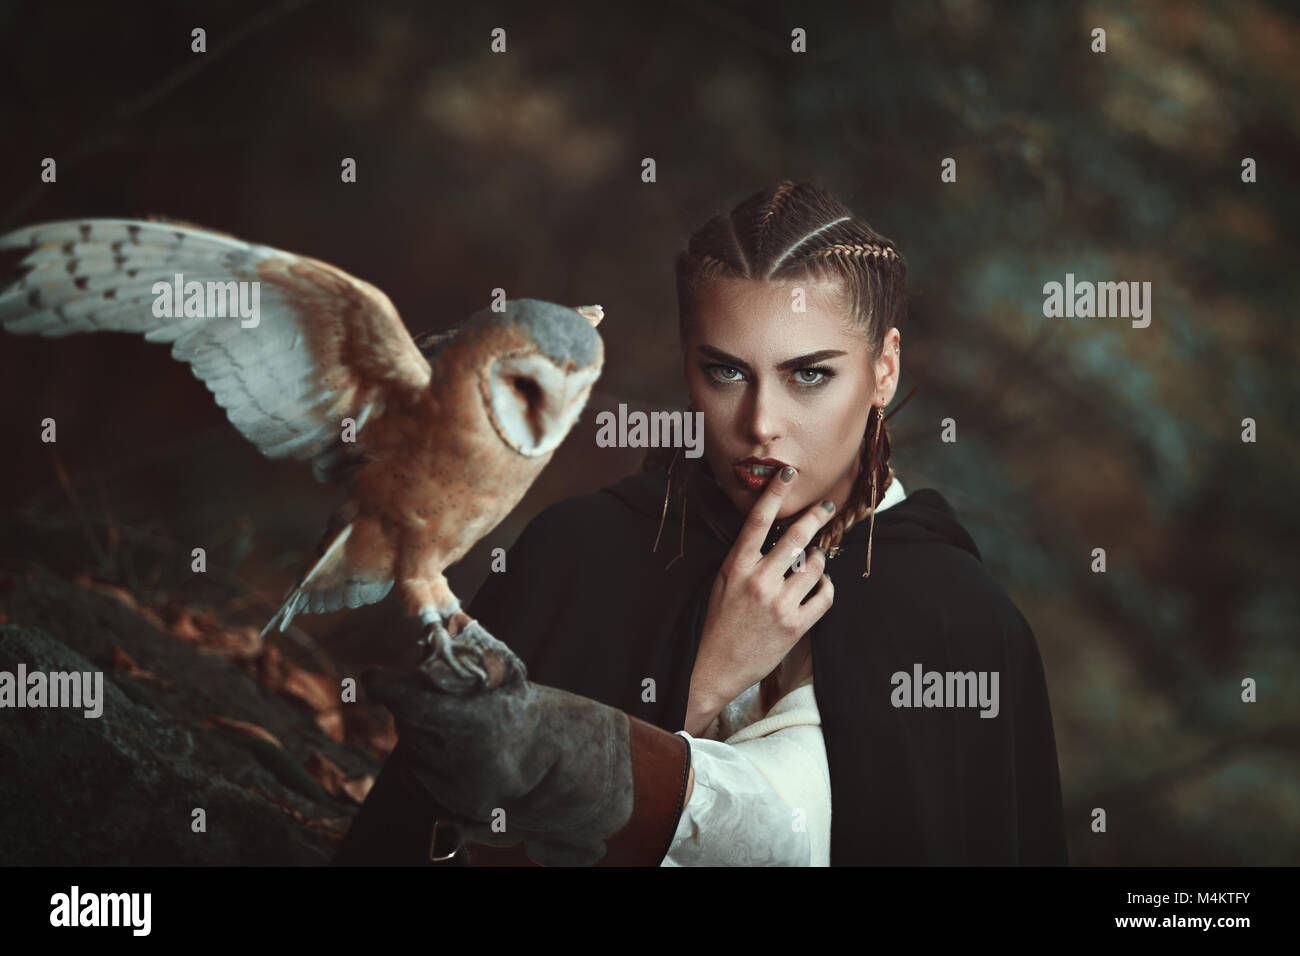 Woman with barn owl on her arm. Forest background - Stock Image